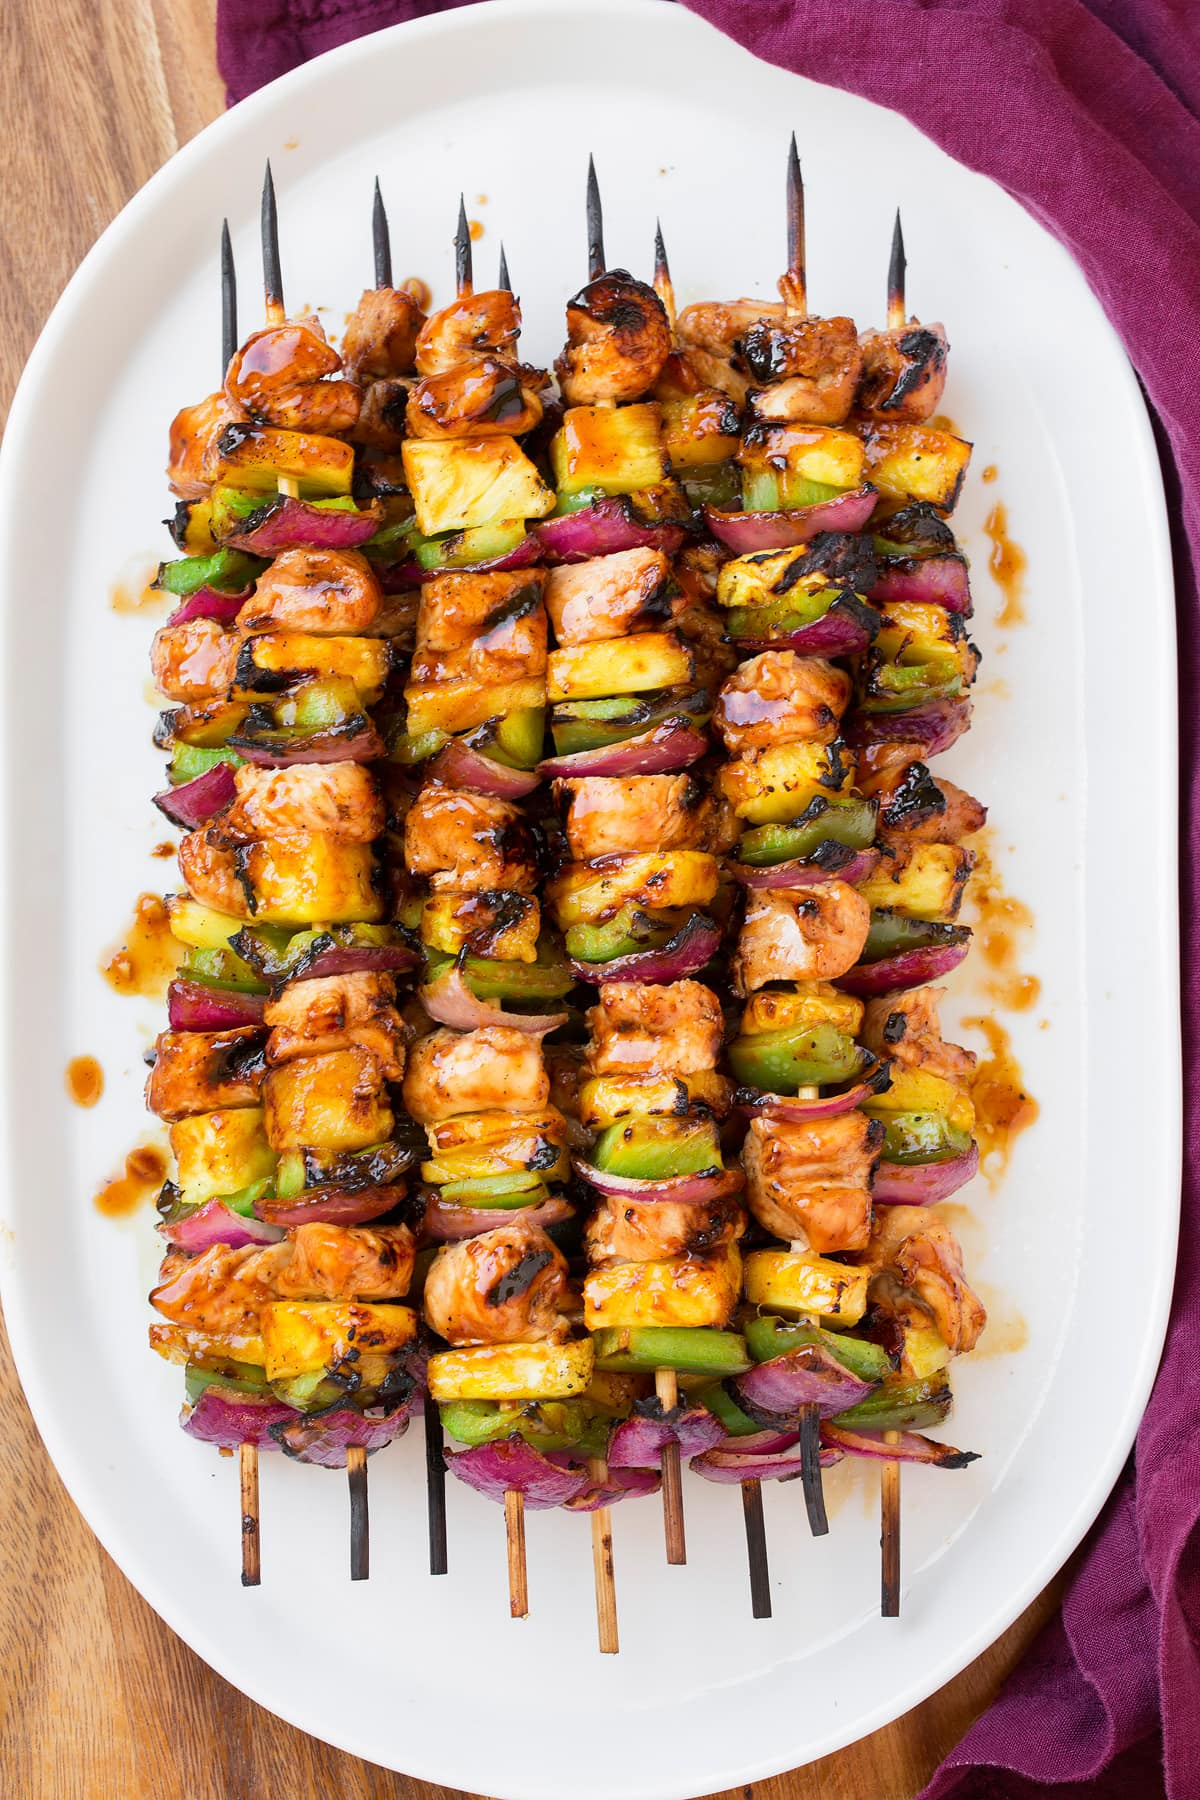 Stack of chicken skewers on a plate.